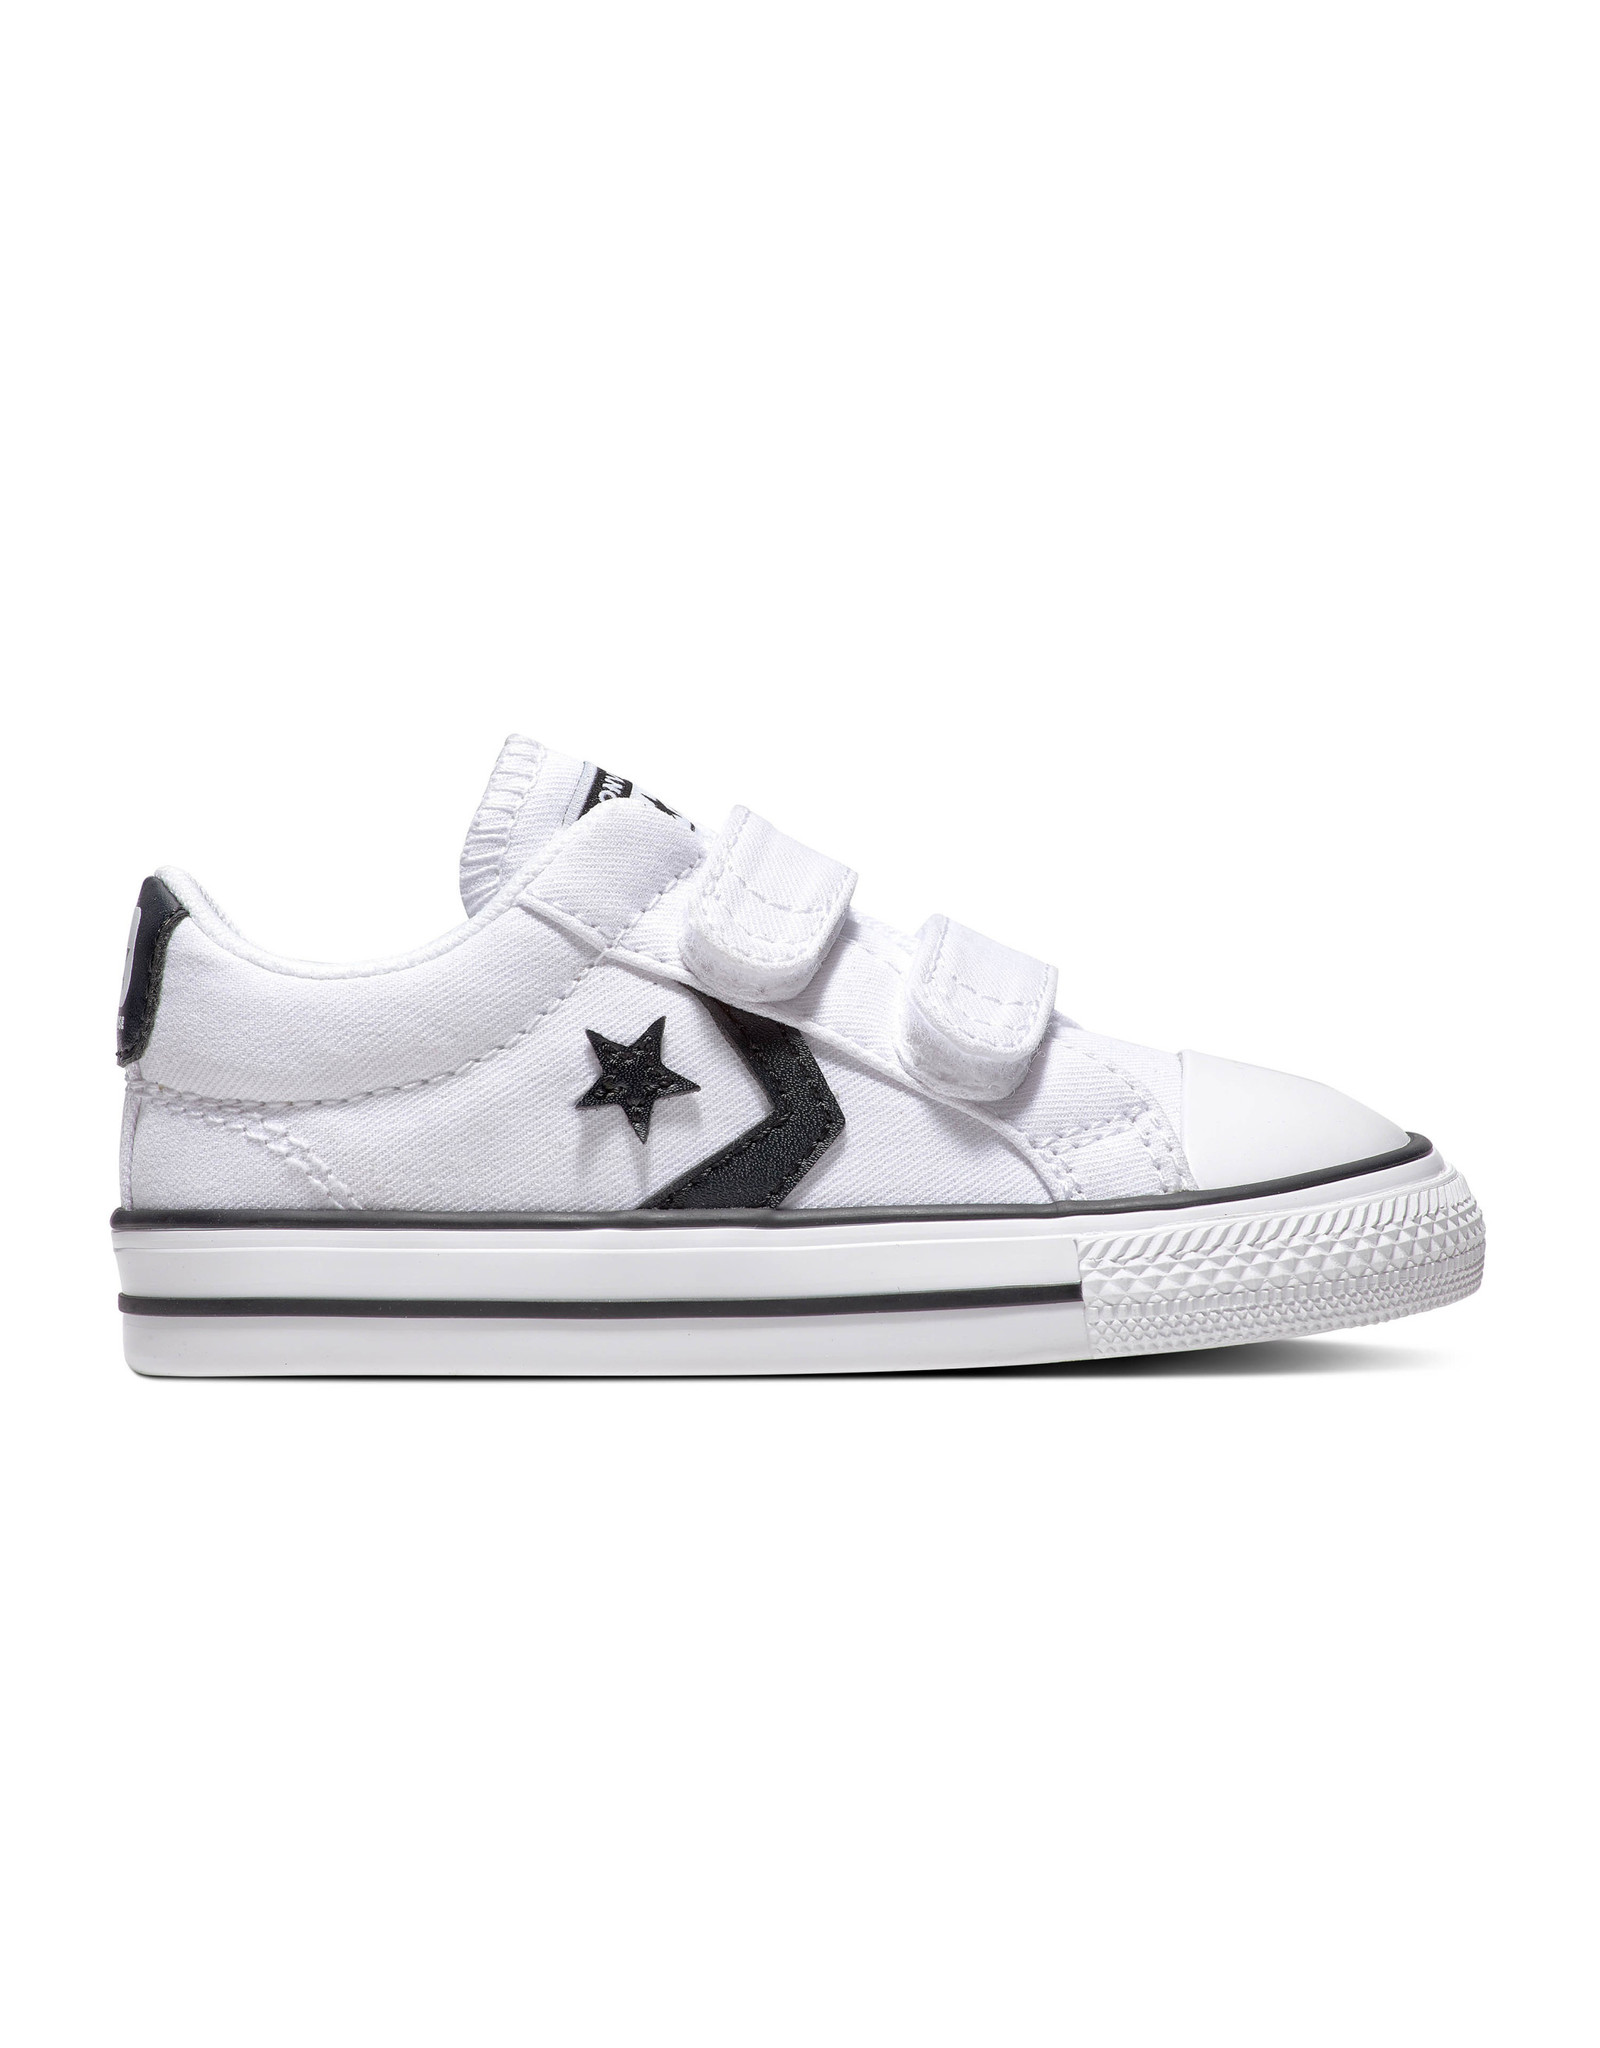 CONVERSE STAR PLAYER 2V OX WHITE/BLACK/WHITE CKVWB-763527C